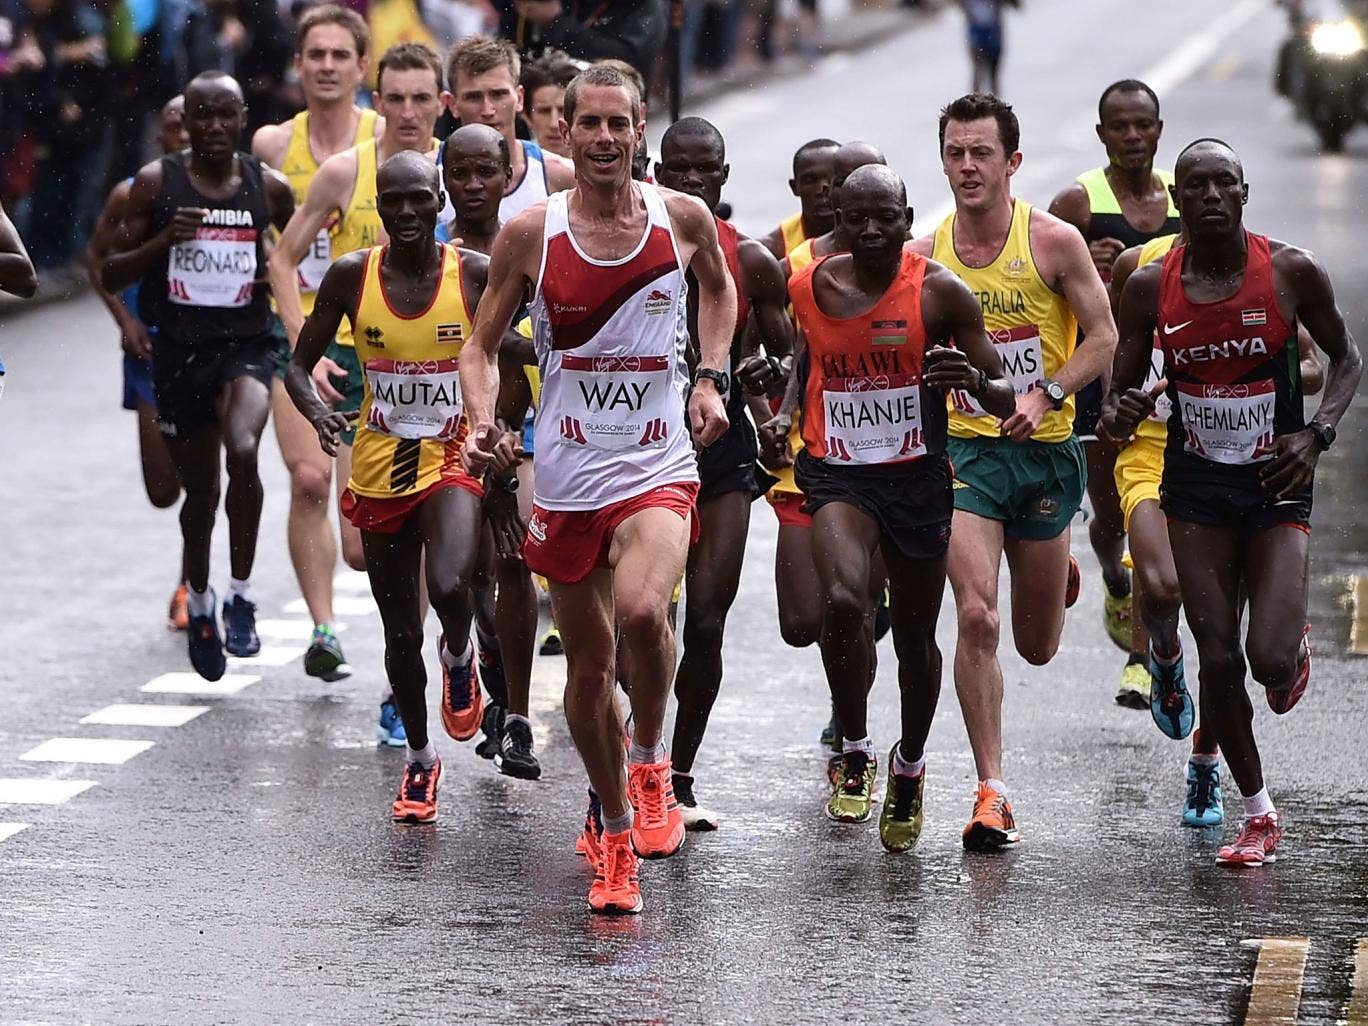 Steve Way leading the marathon, before finishing 10th, the top English runner